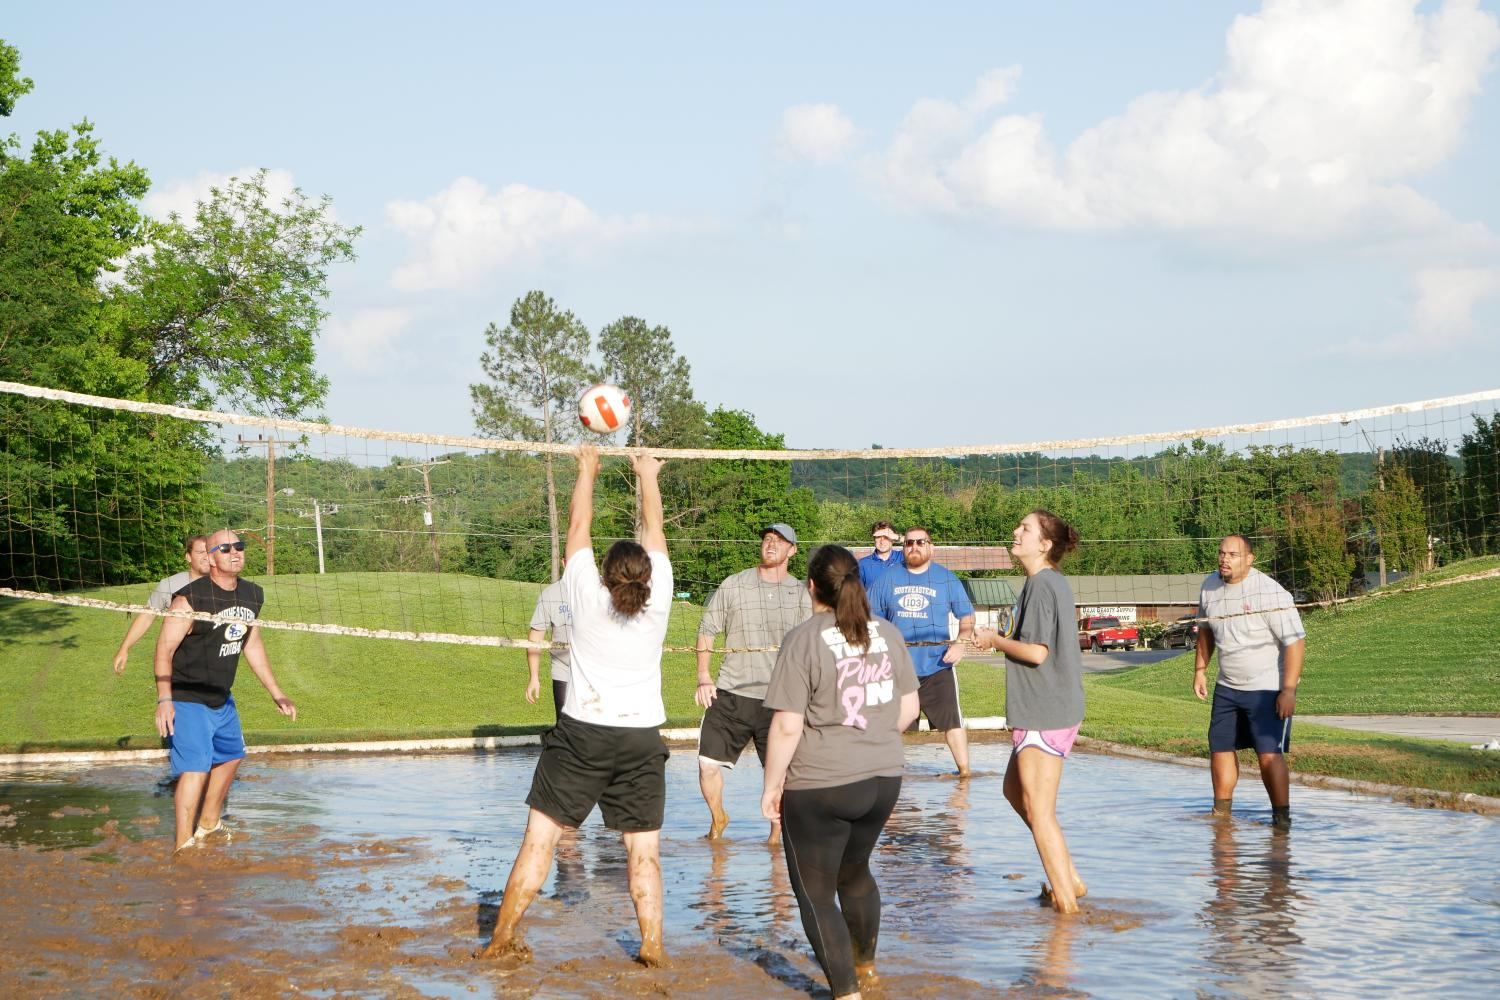 Spring+Fest+teams+competed+in+a+game+of+mud+volleyball+on+Thursday%2C+April+20.